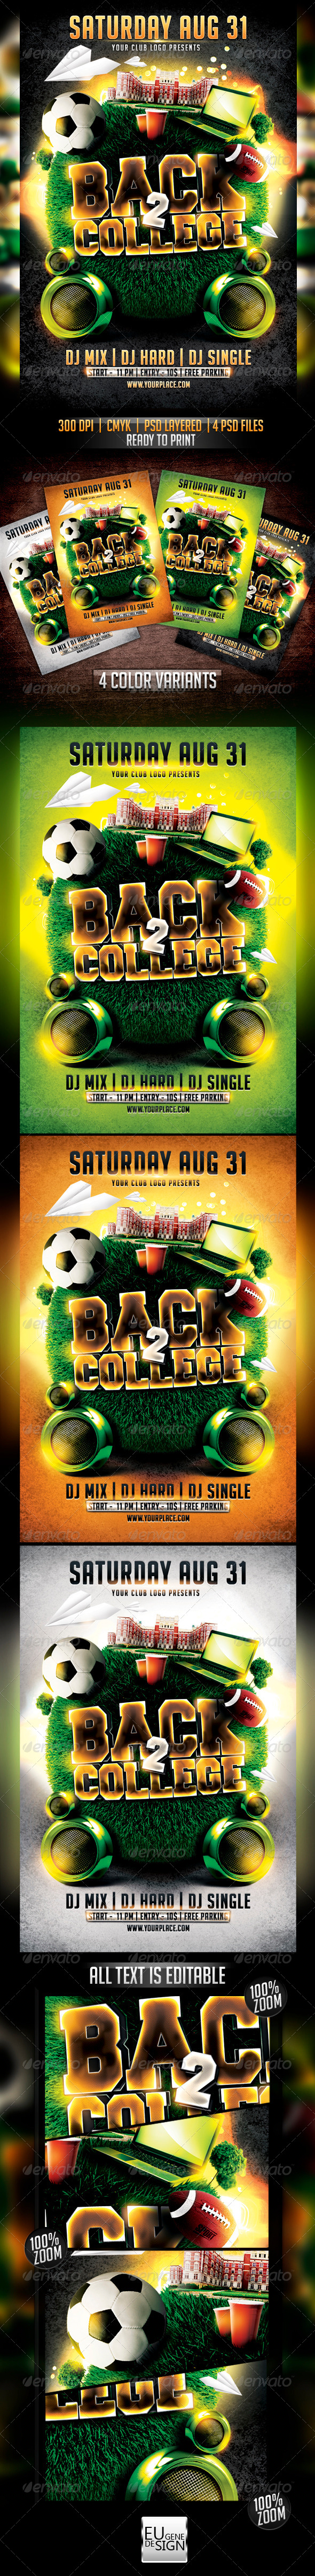 Back to College Flyer Template - Clubs & Parties Events